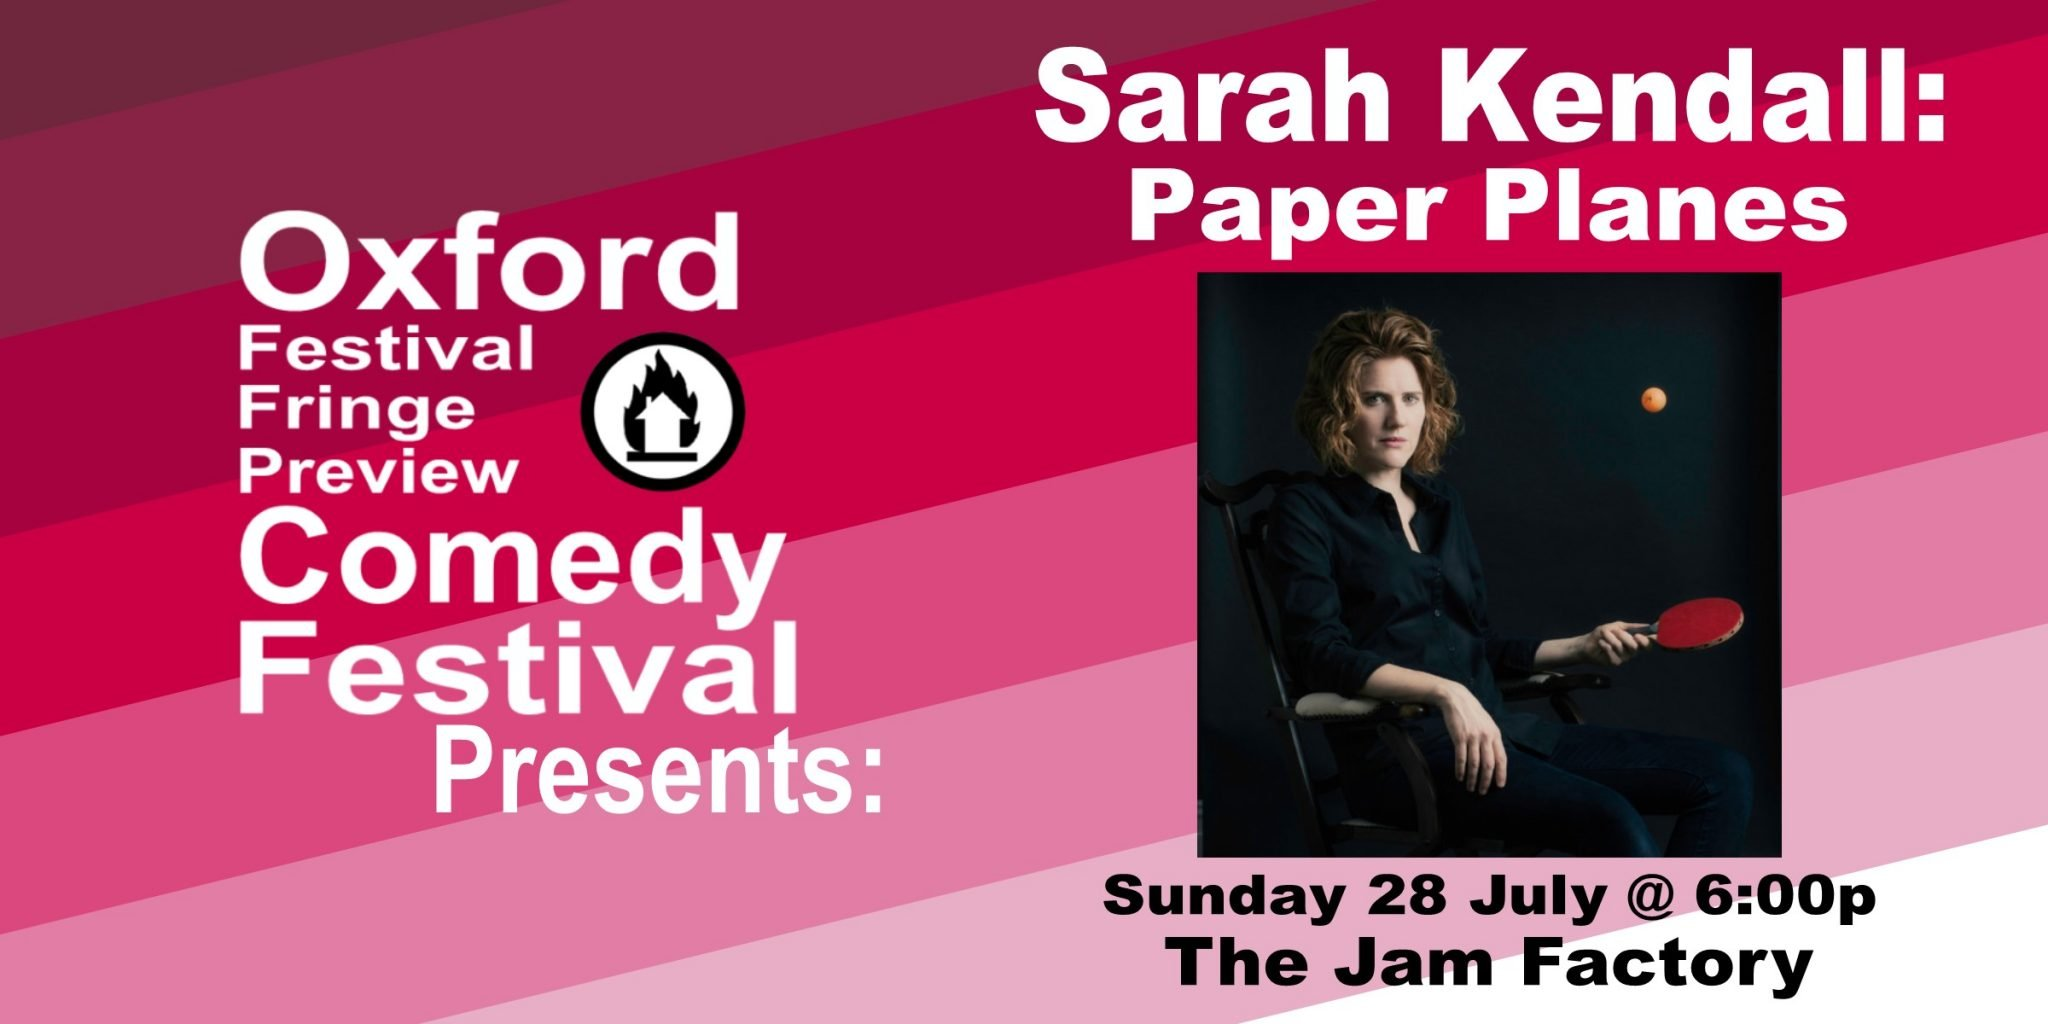 Oxford Comedy Festival 2019 presents Sarah Kendall: Paper Planes